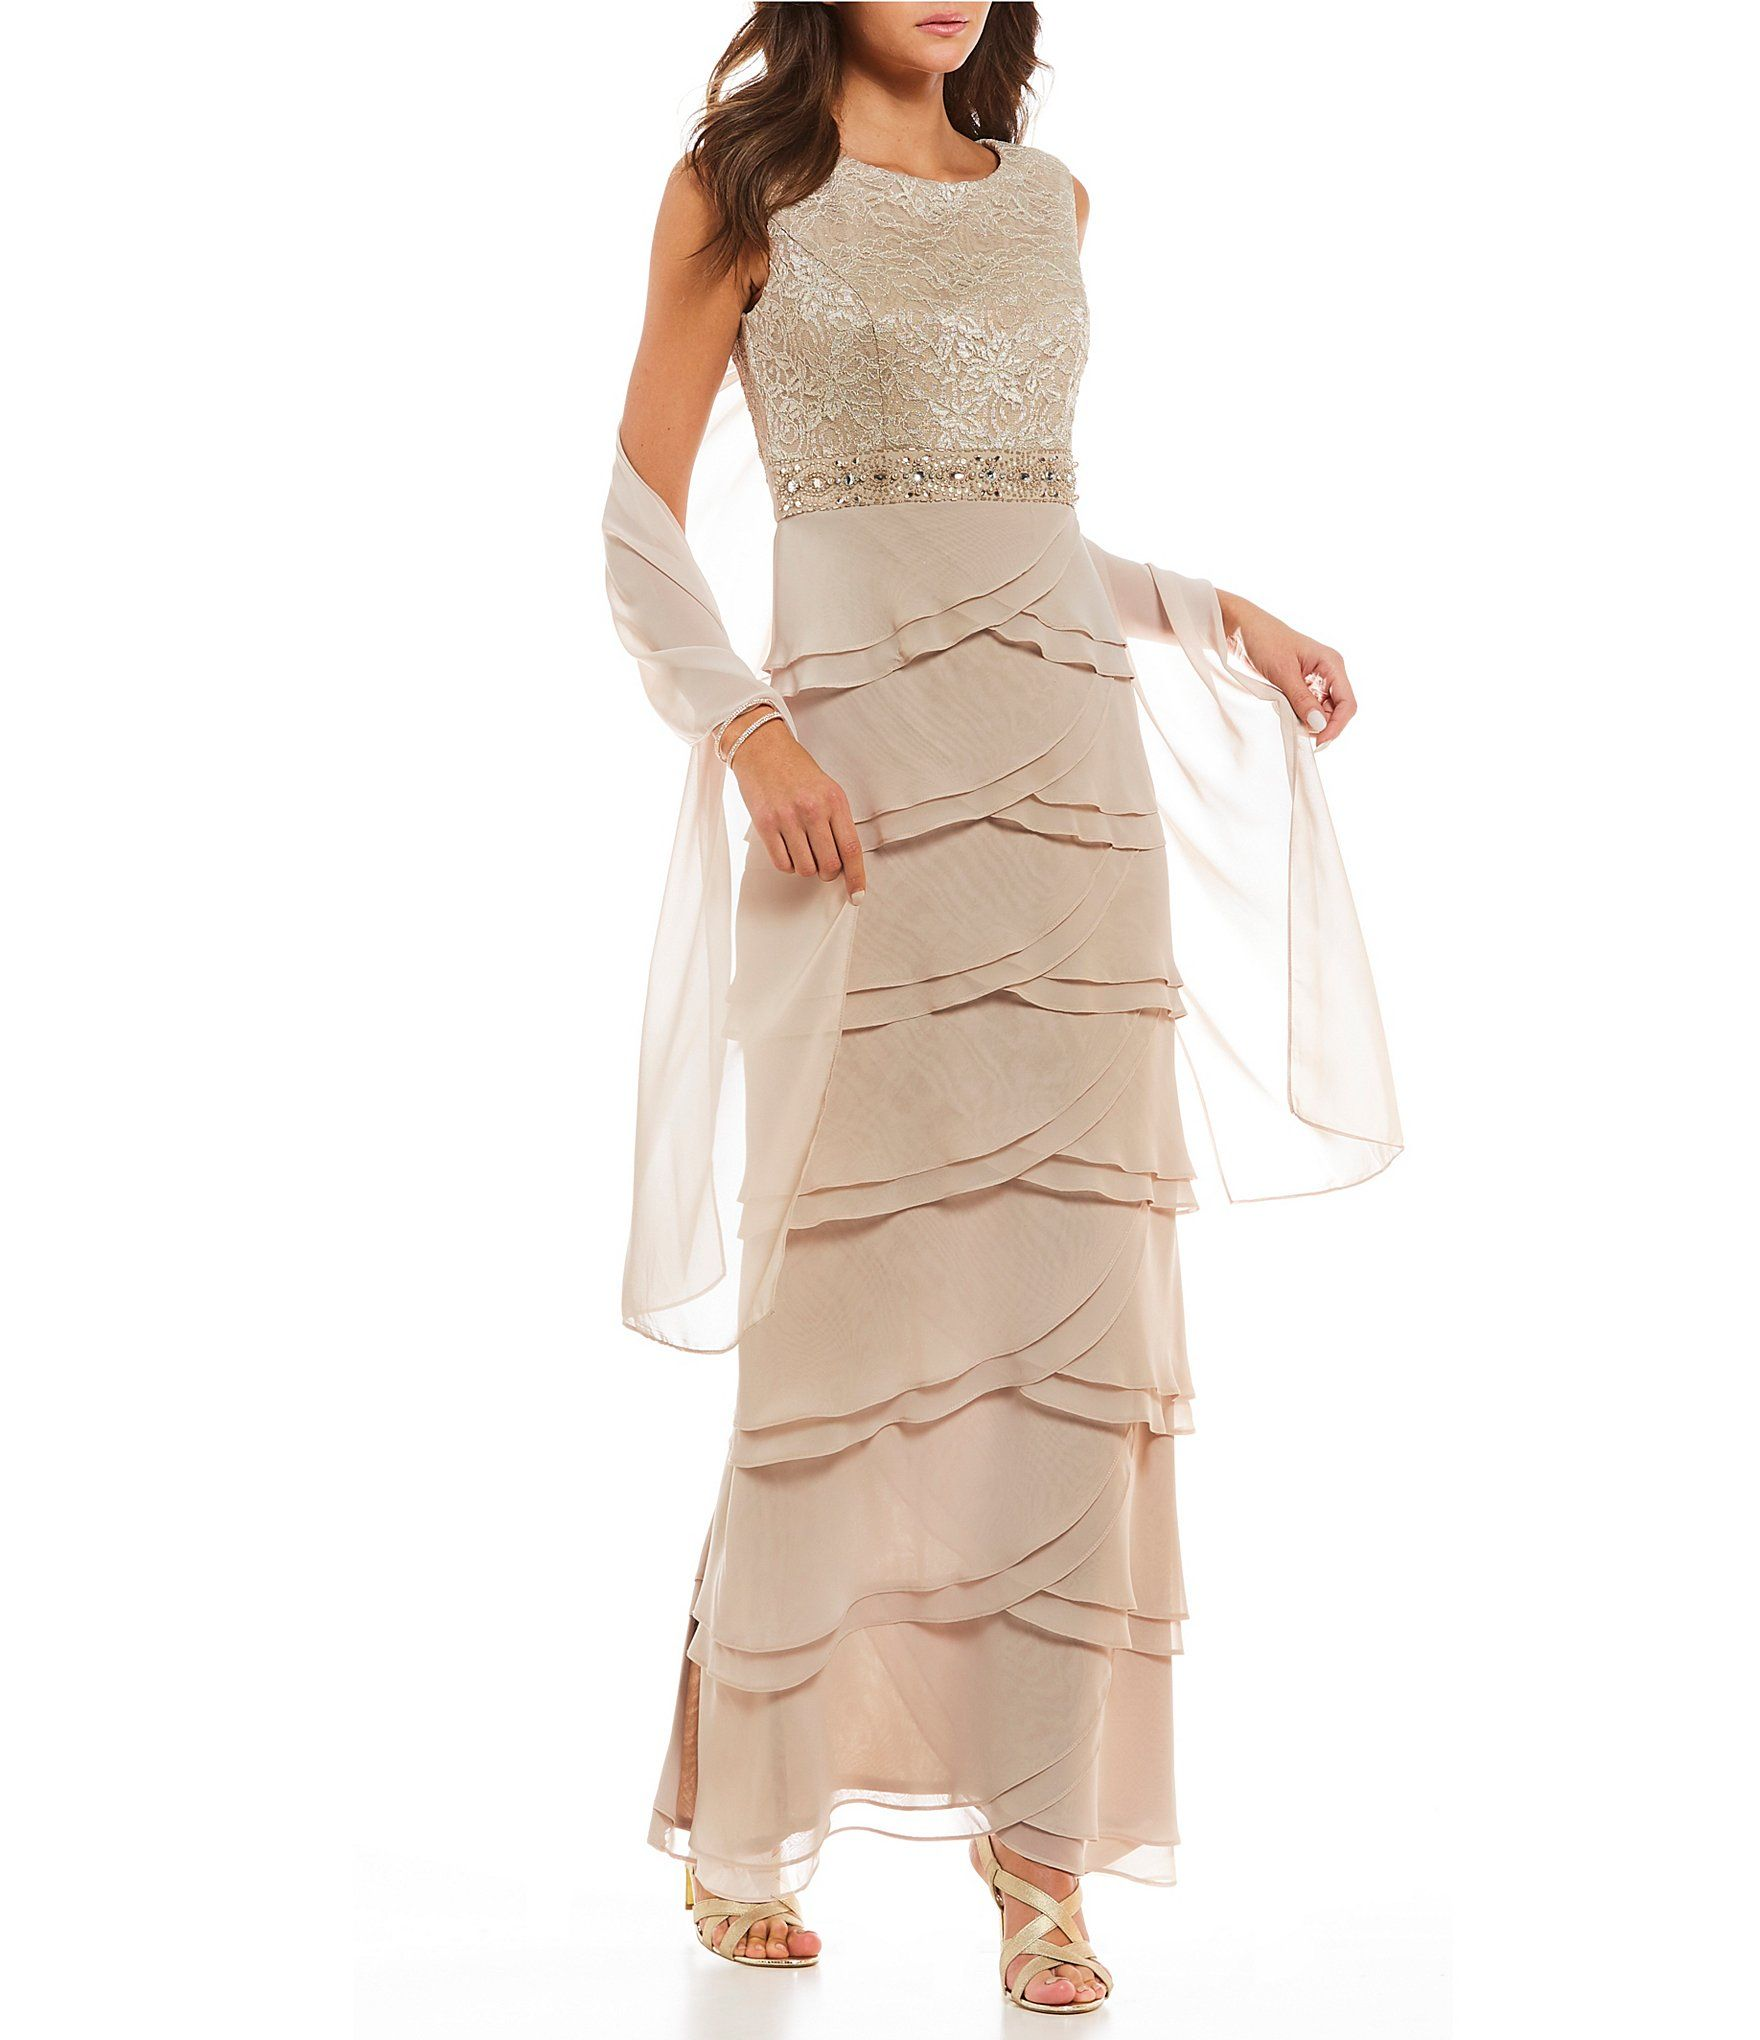 4100340aa062 Shop for Jessica Howard Layered Skirt Gown at Dillards.com. Visit  Dillards.com to find clothing, accessories, shoes, cosmetics & more.